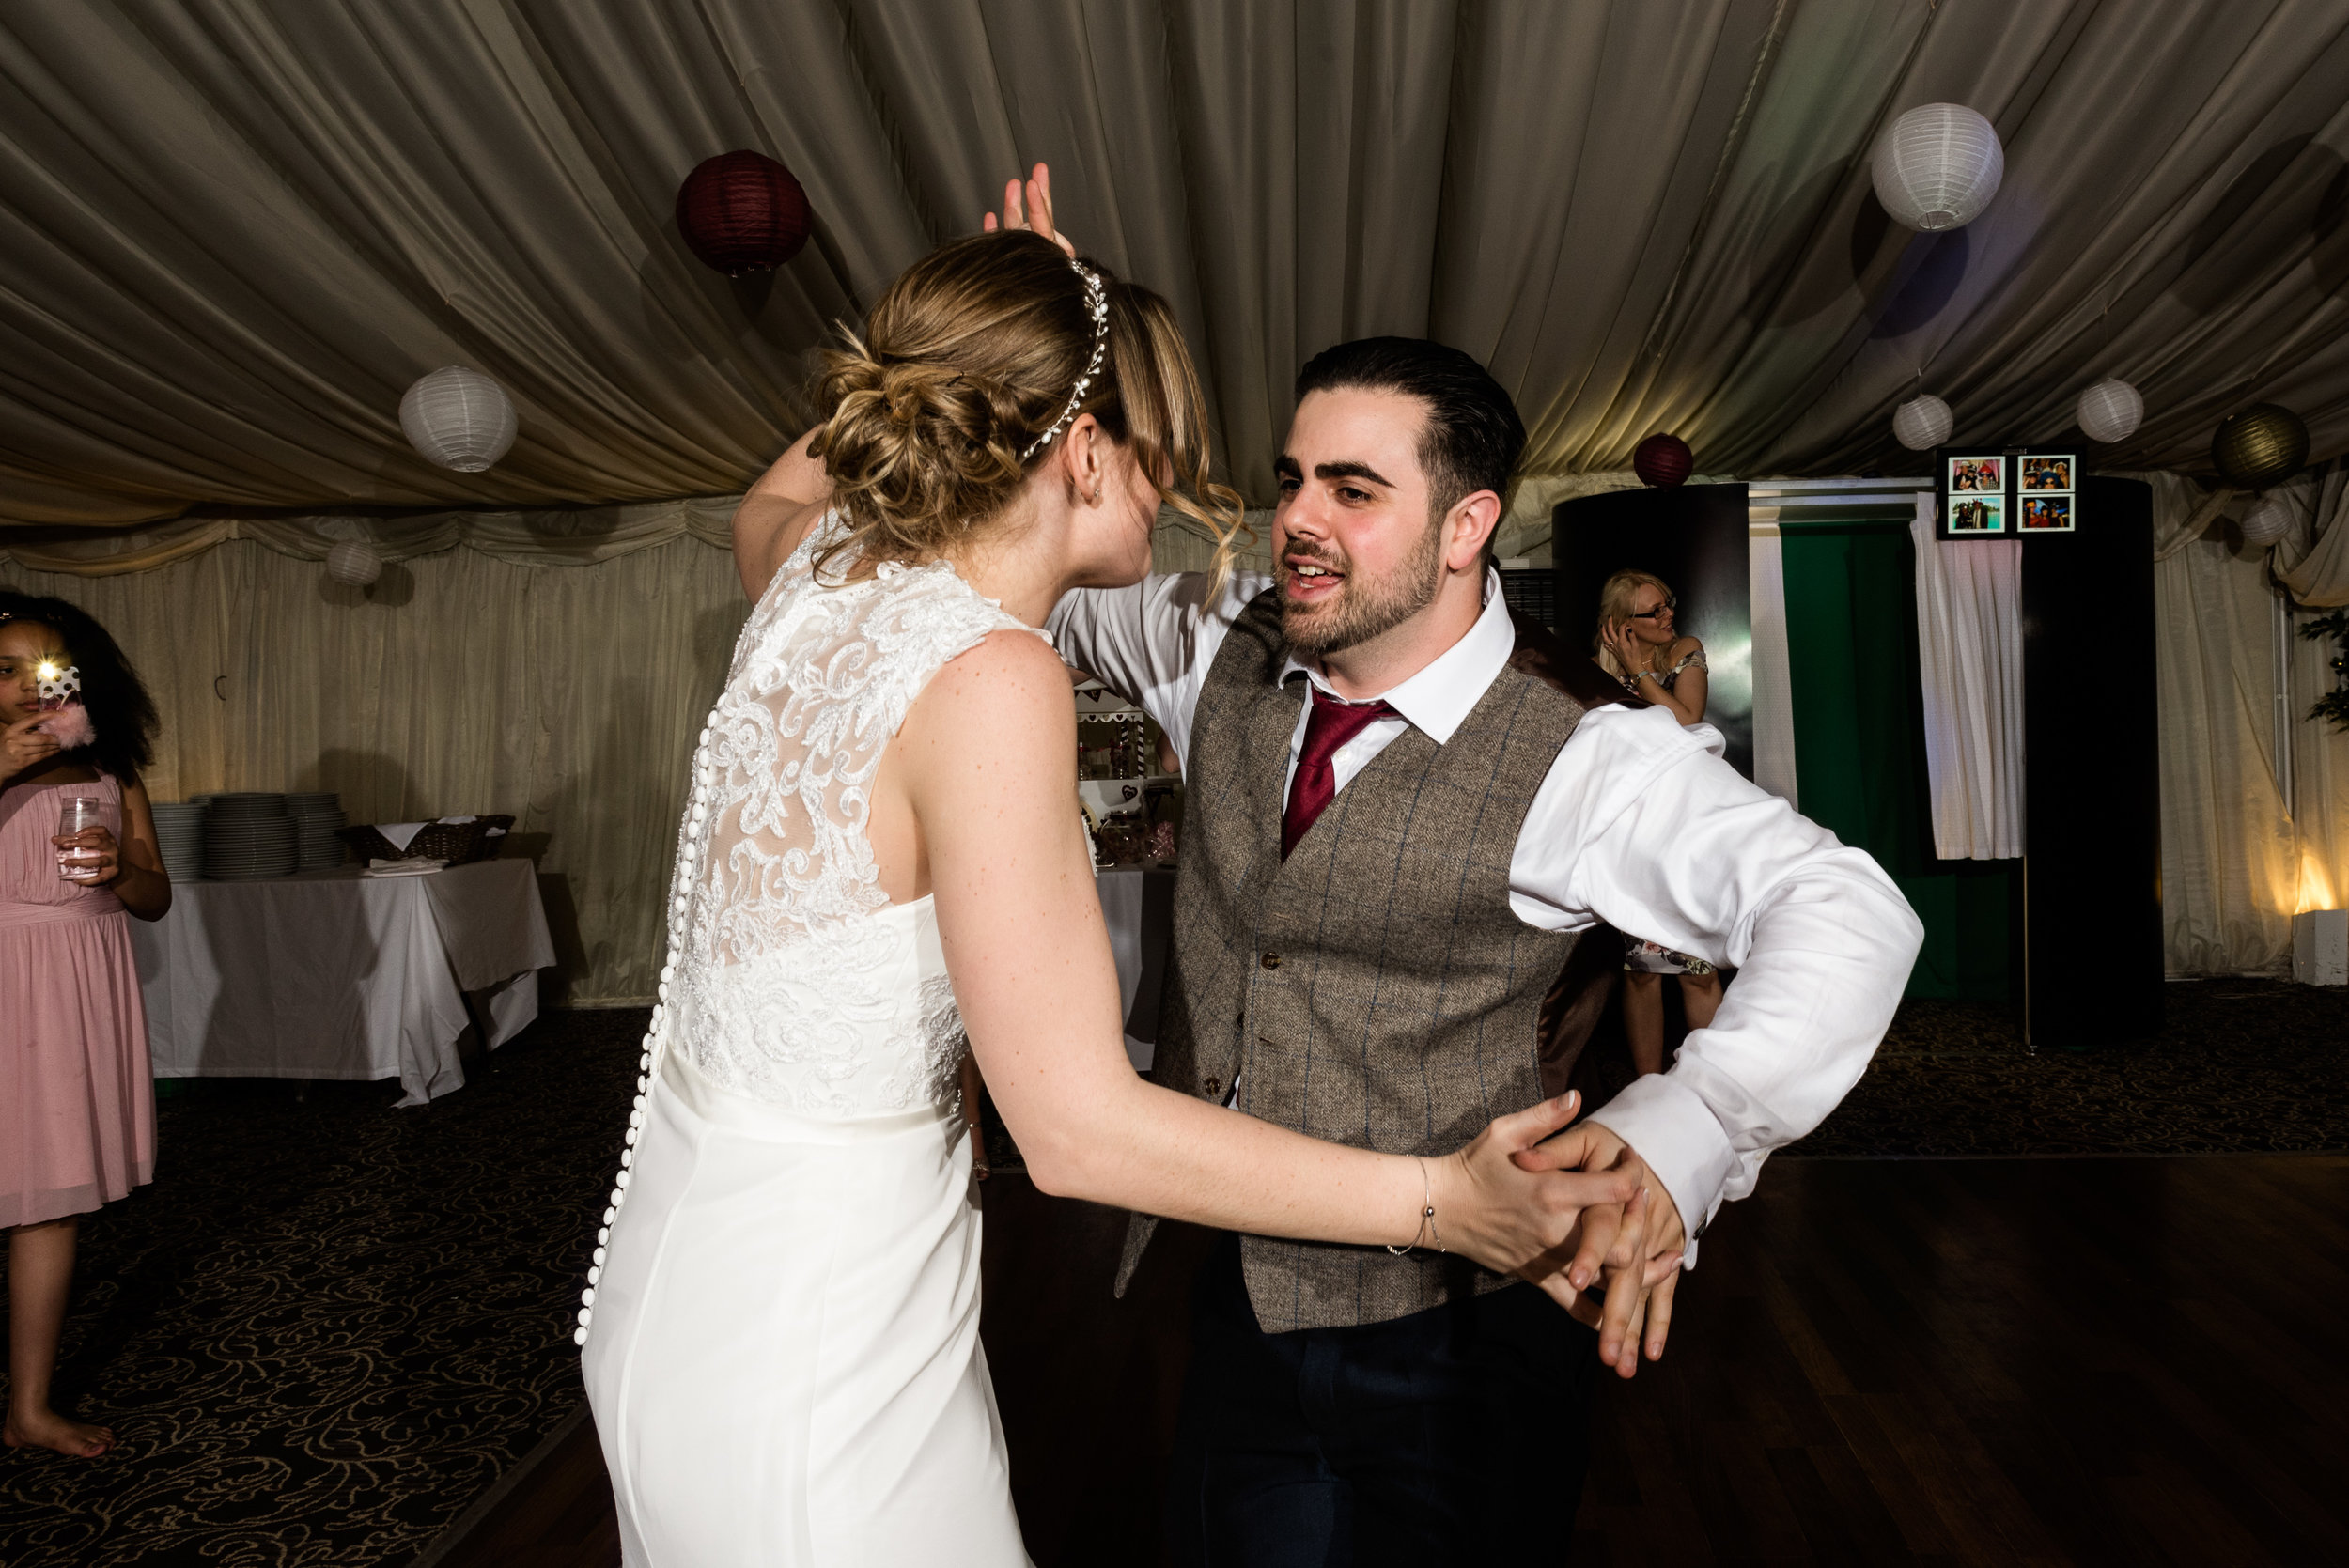 Birmingham Documentary Wedding Photography at New Hall, Sutton Coldfield Turkish Red Candid Reportage - Jenny Harper-78.jpg